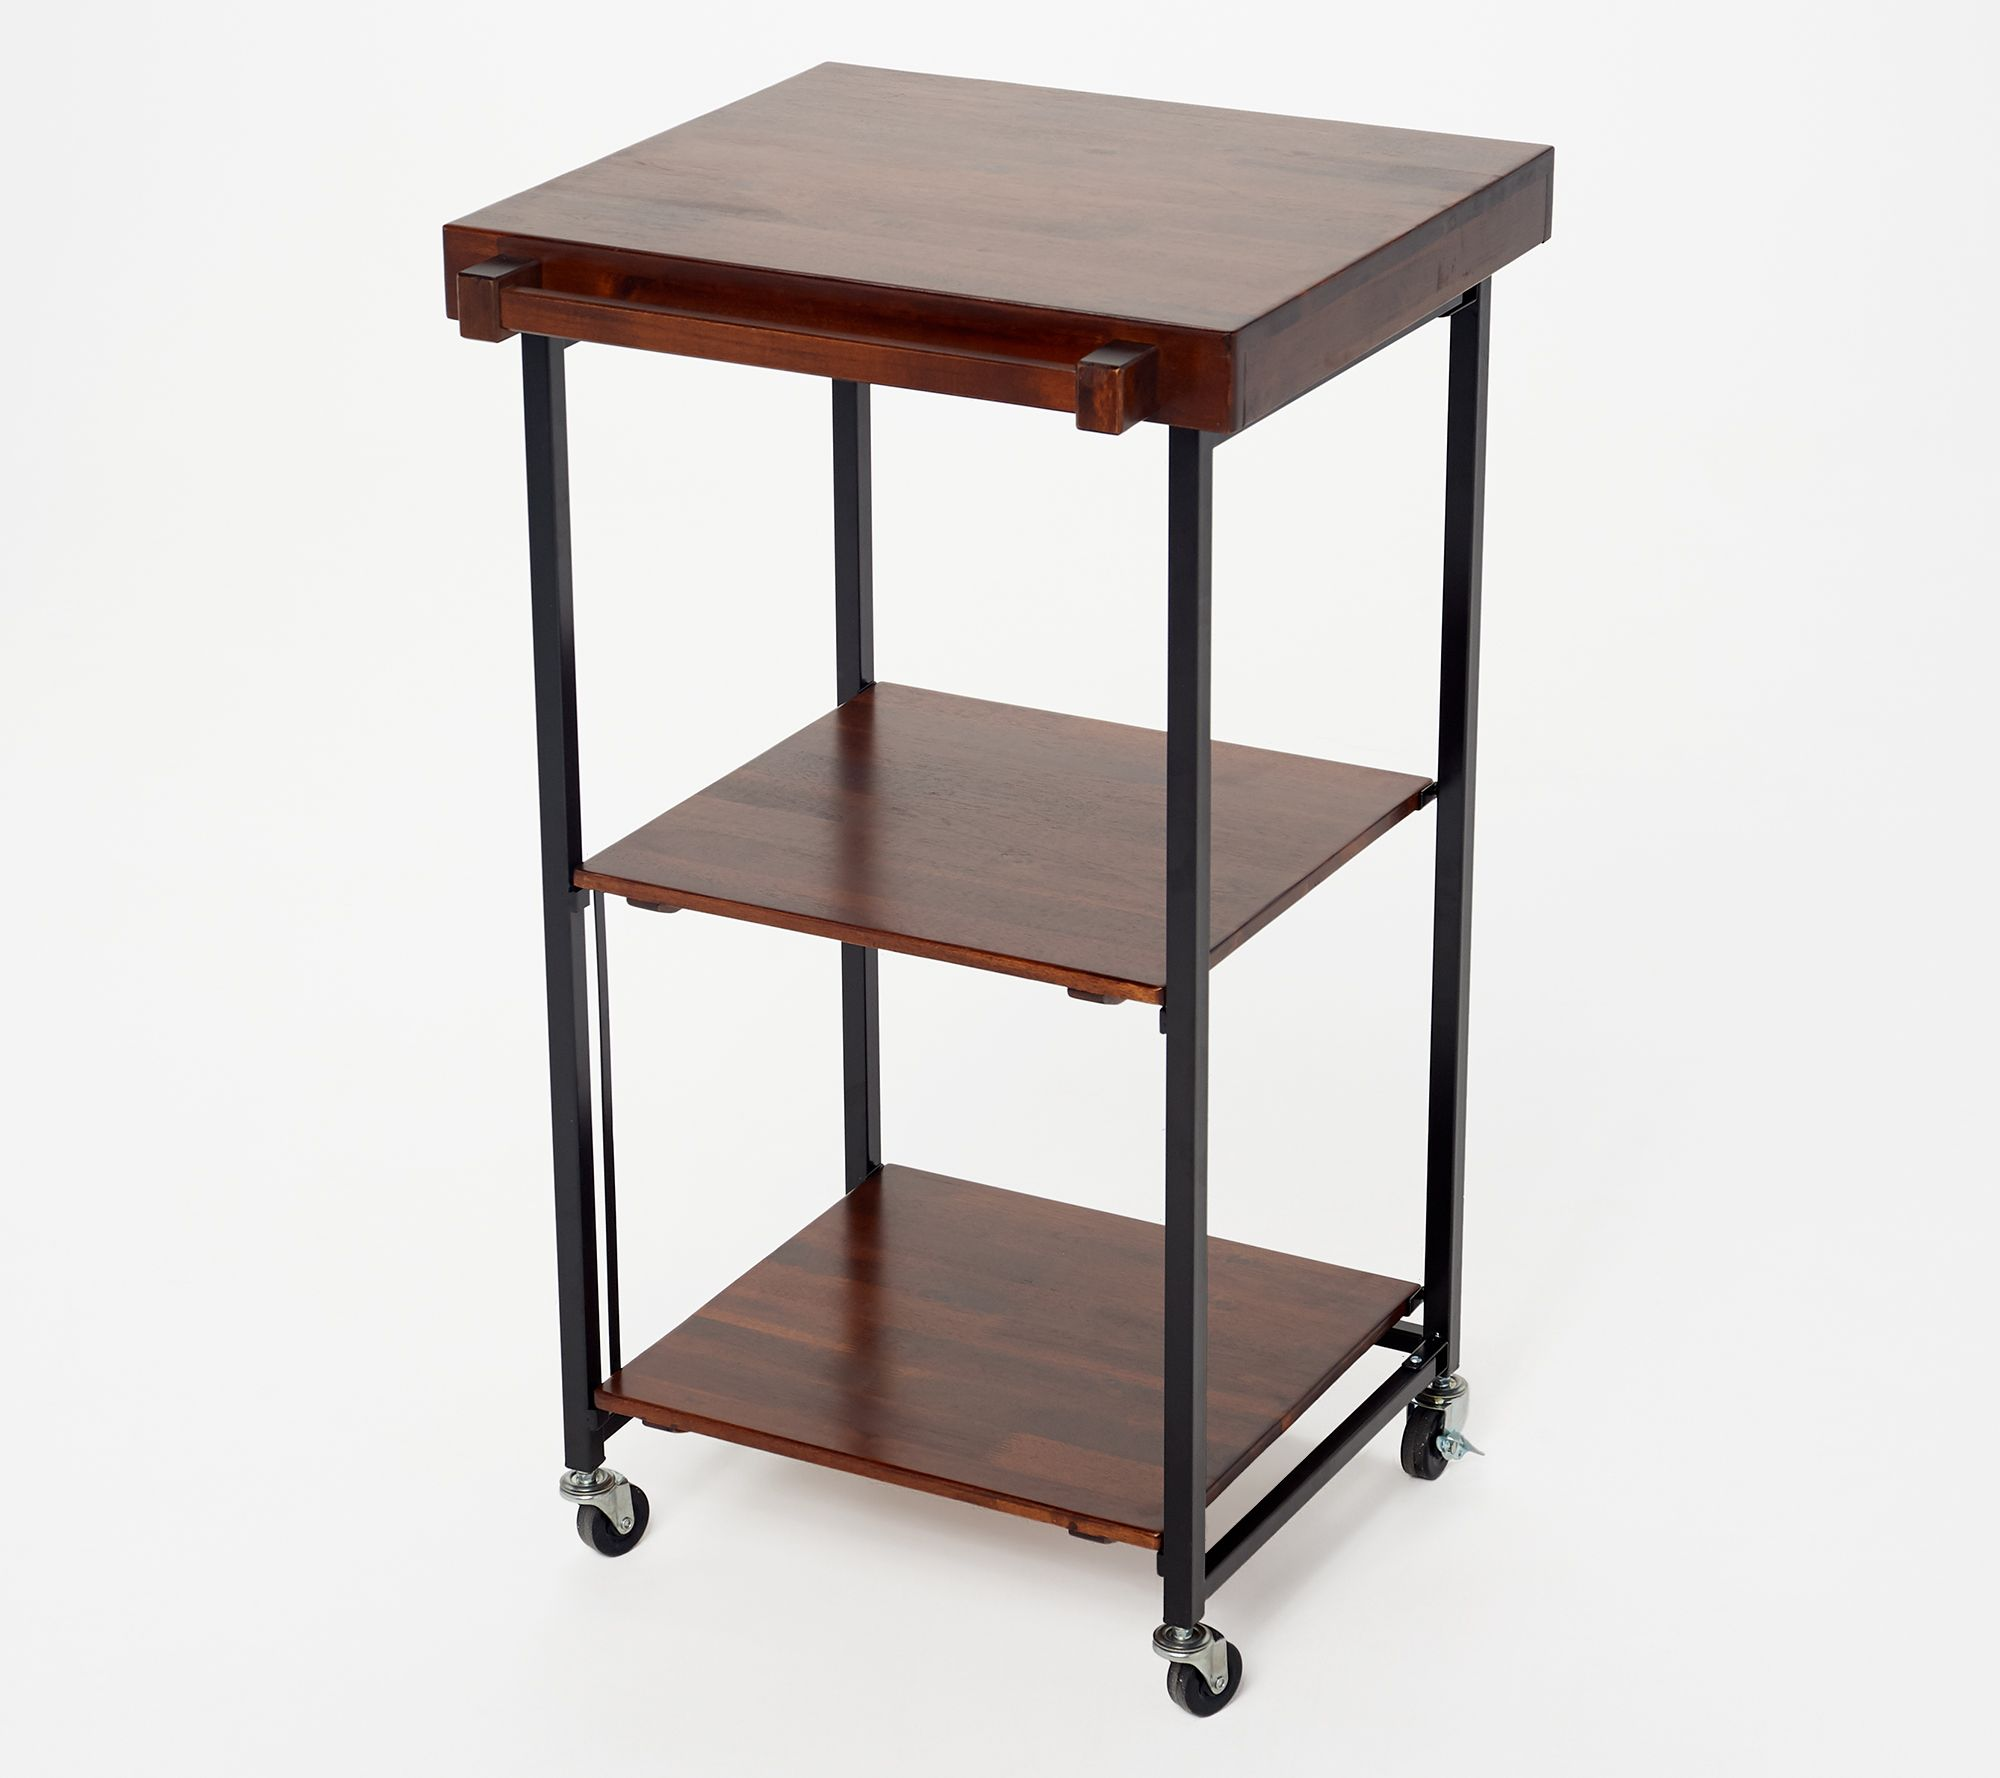 Oasis Folding Kitchen Storage Cart W